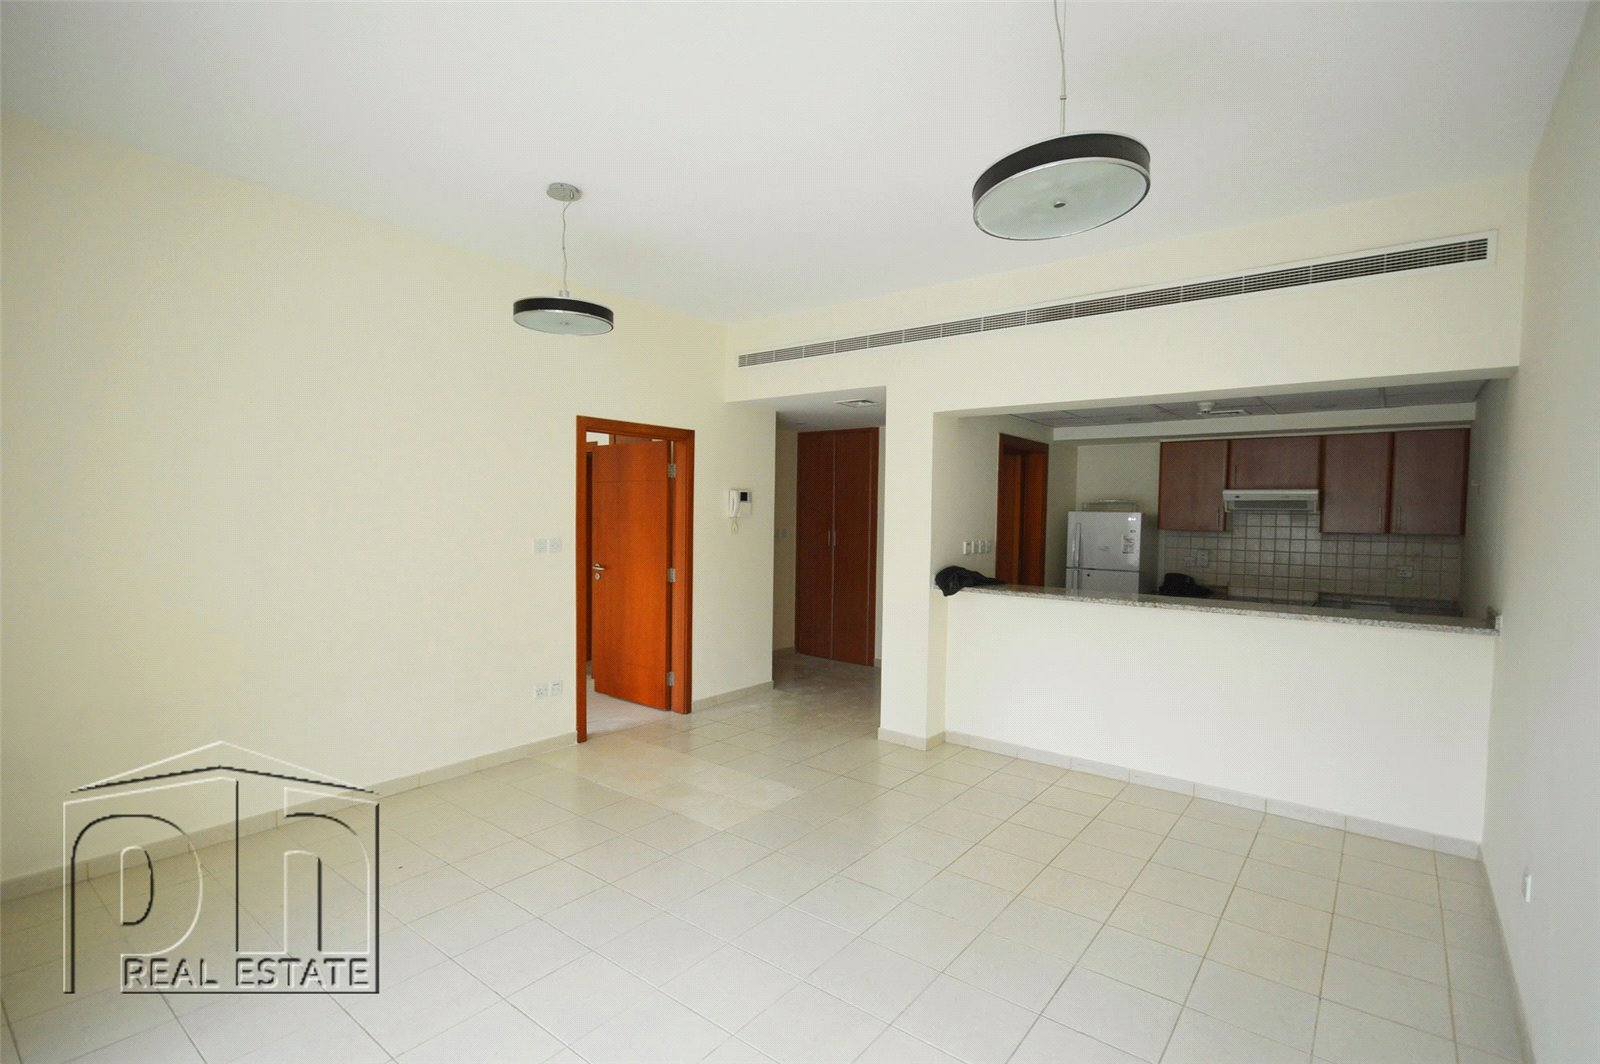 Dbl180840 L One Bedroom One Bathroom Apartment To Rent In Al Thayyal 1 The Greens Dubai